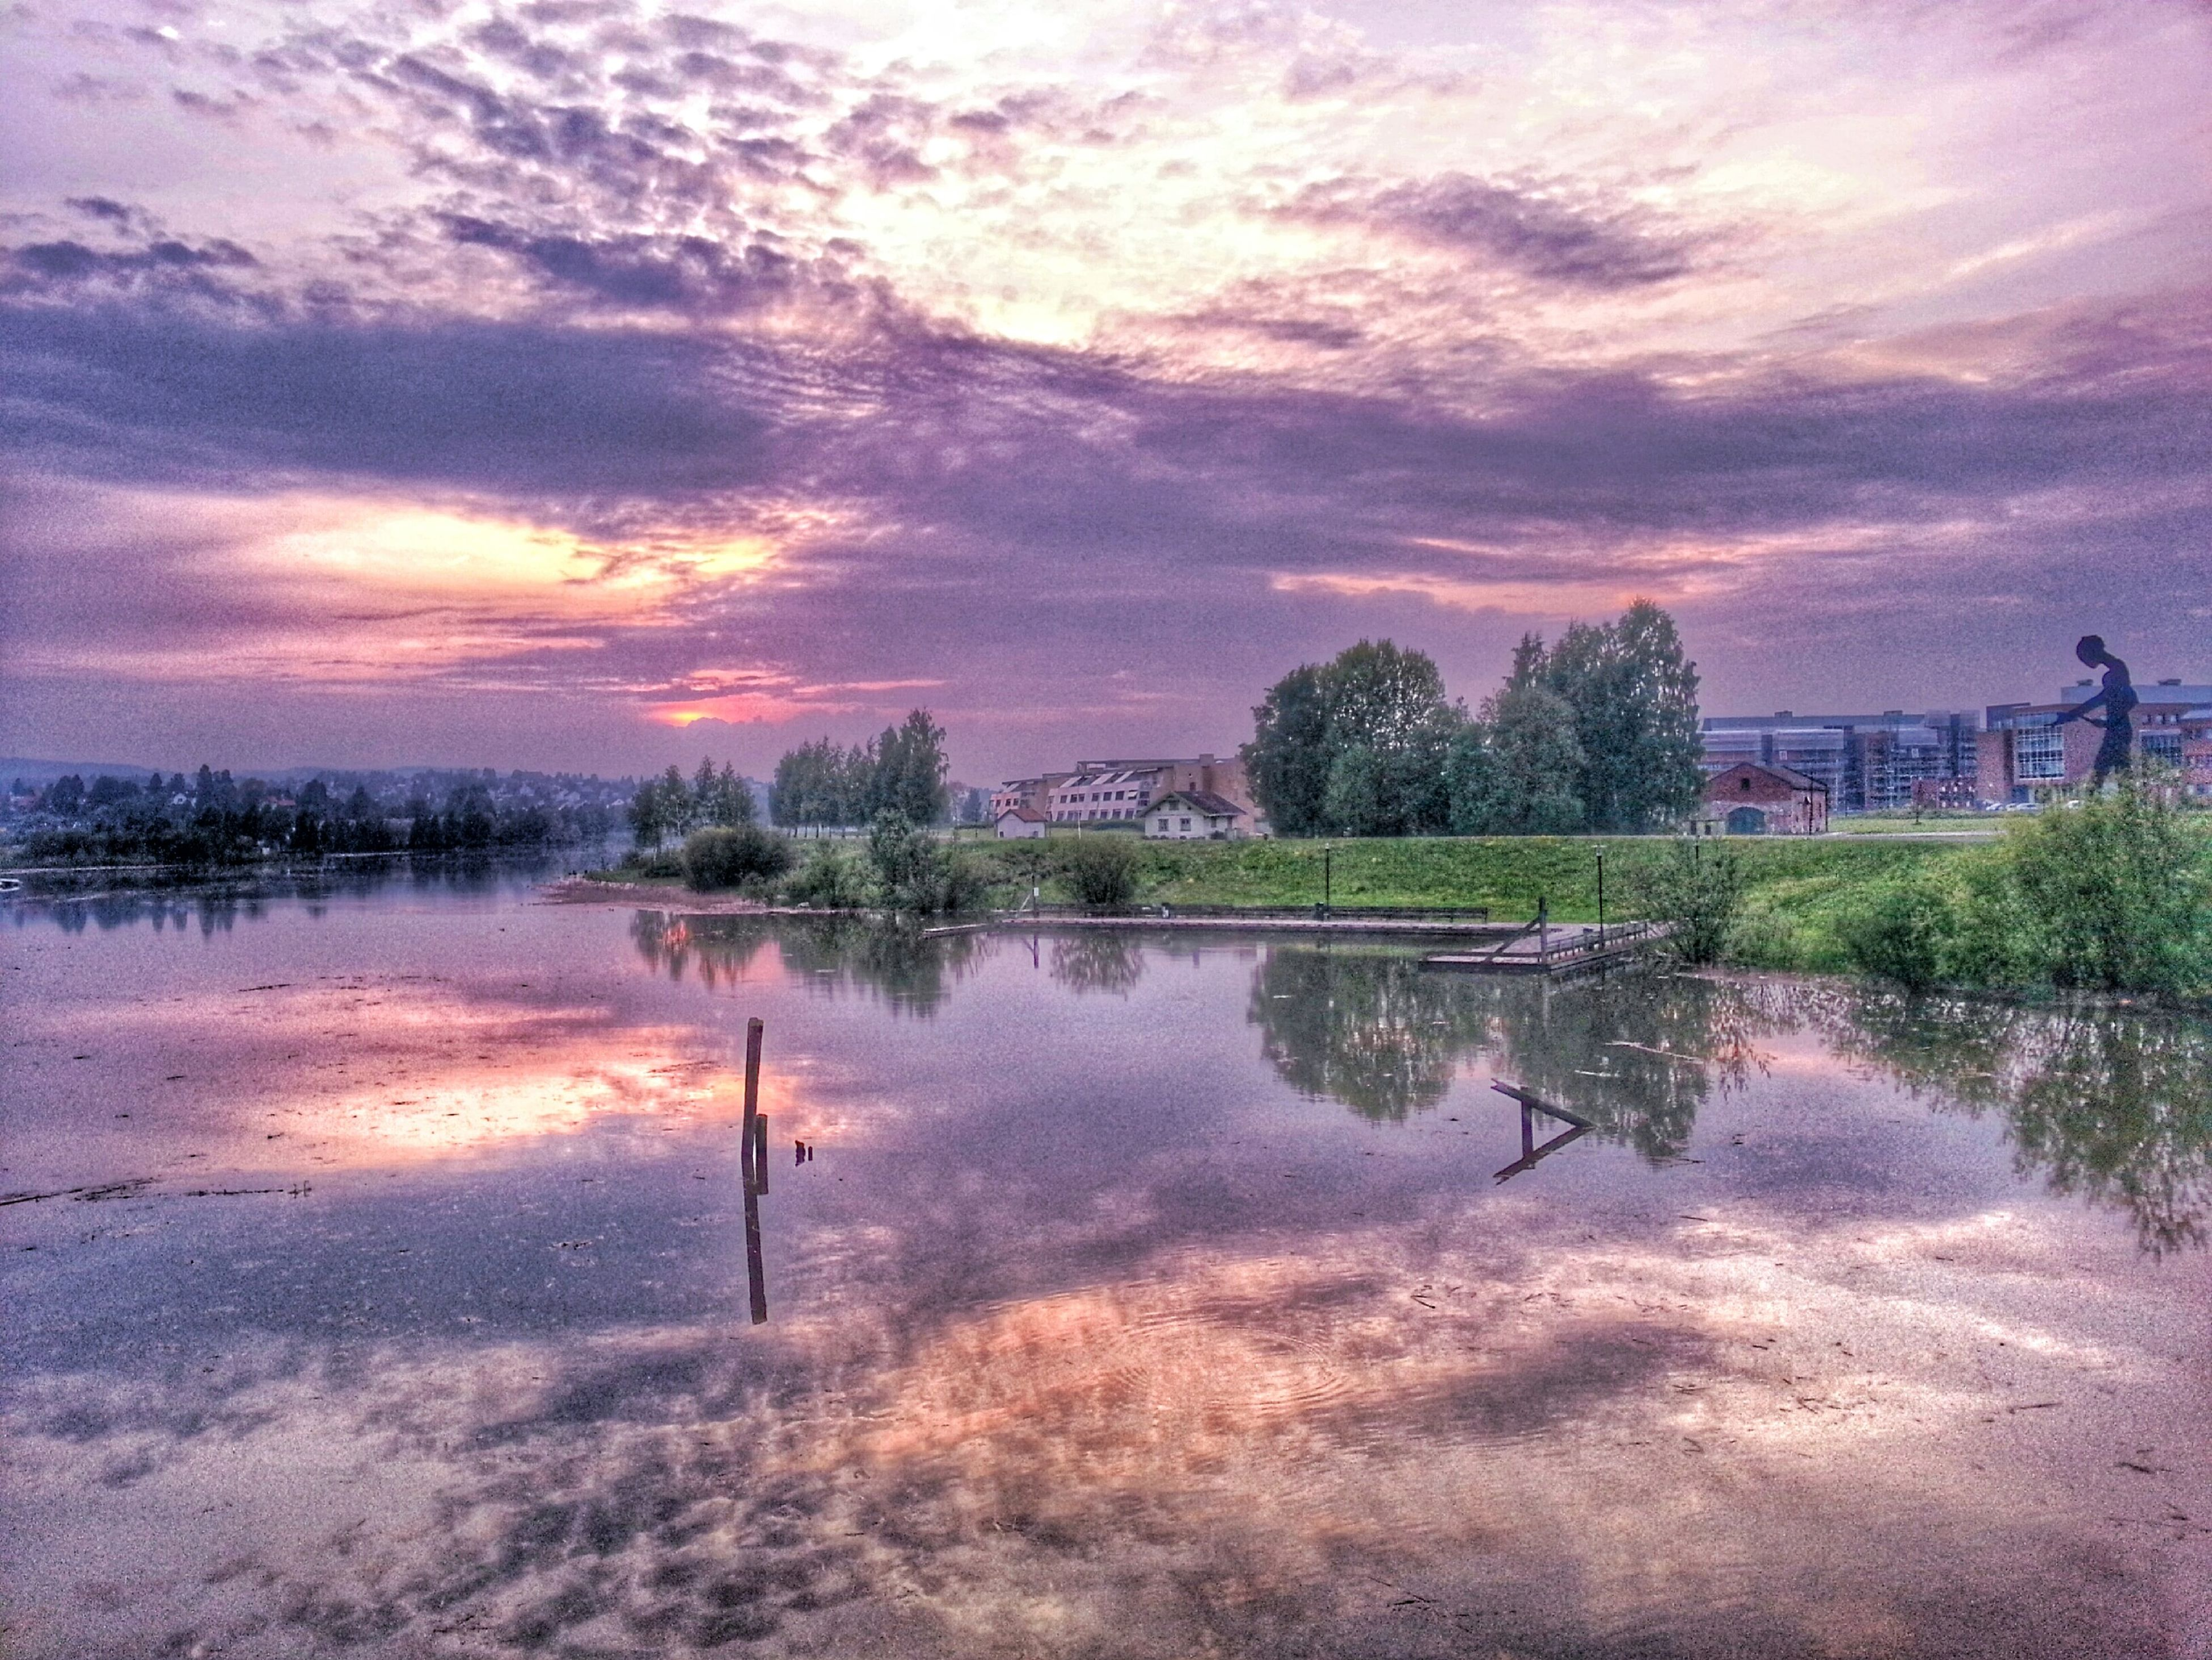 sky, cloud - sky, tree, water, reflection, sunset, tranquil scene, tranquility, beauty in nature, scenics, lake, nature, cloudy, weather, built structure, cloud, building exterior, architecture, idyllic, growth